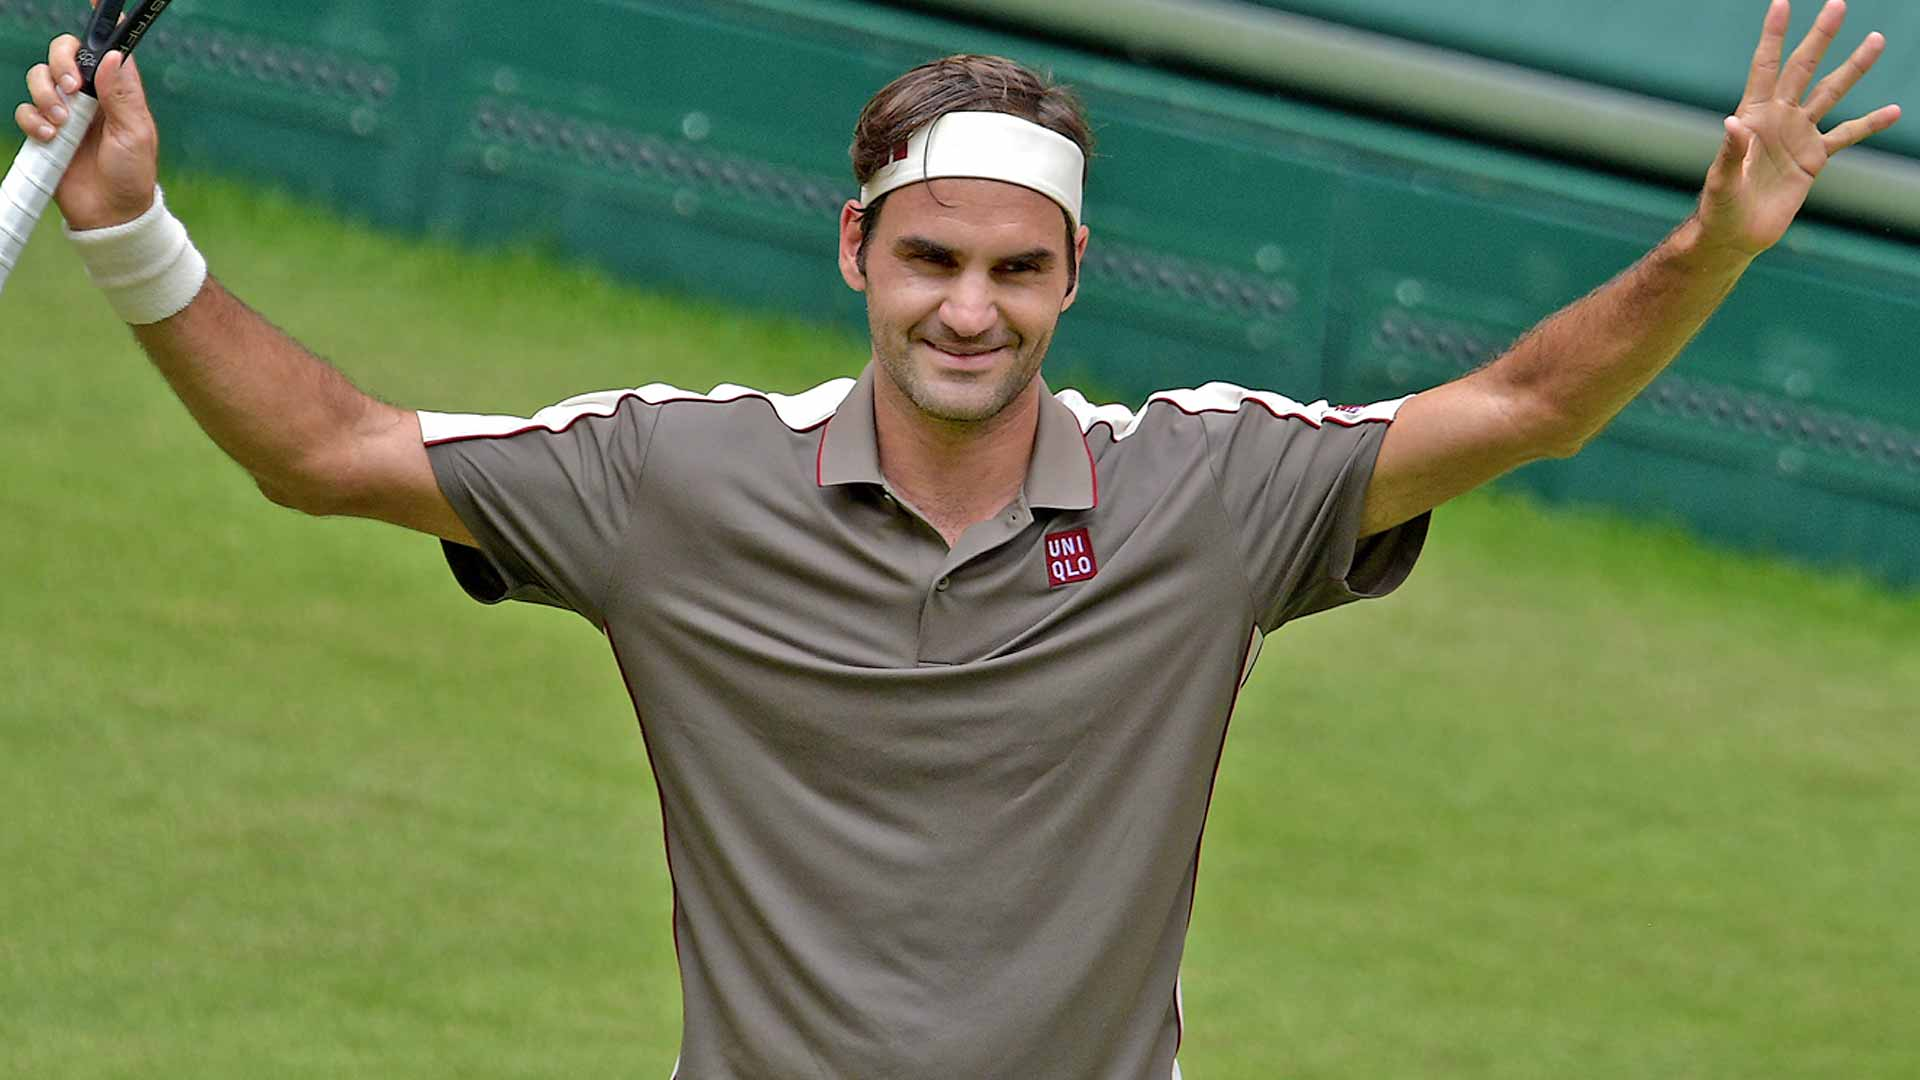 Roger Federer celebrates his first-round win in Halle